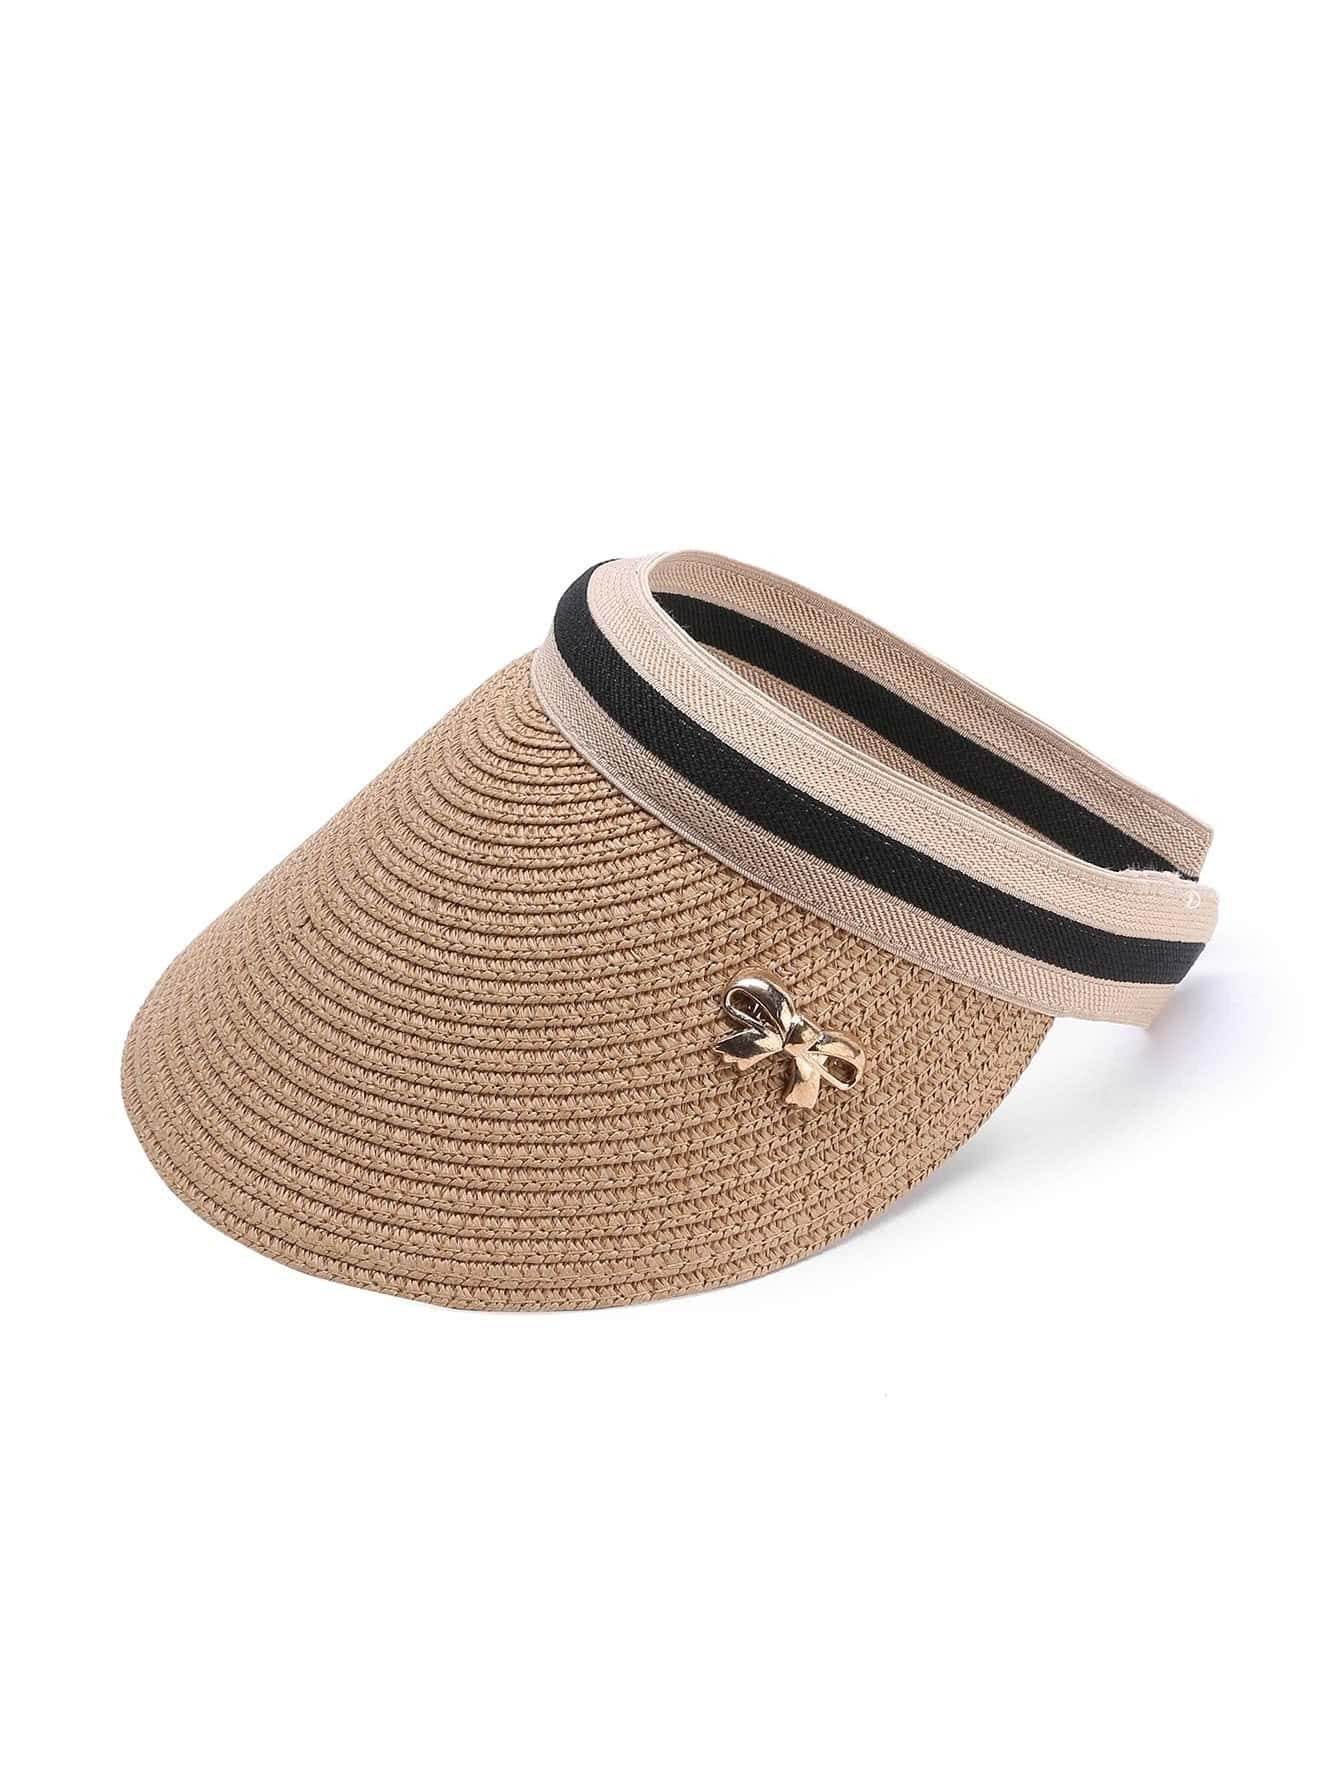 Image of Bow Embellished Straw Visor Hat